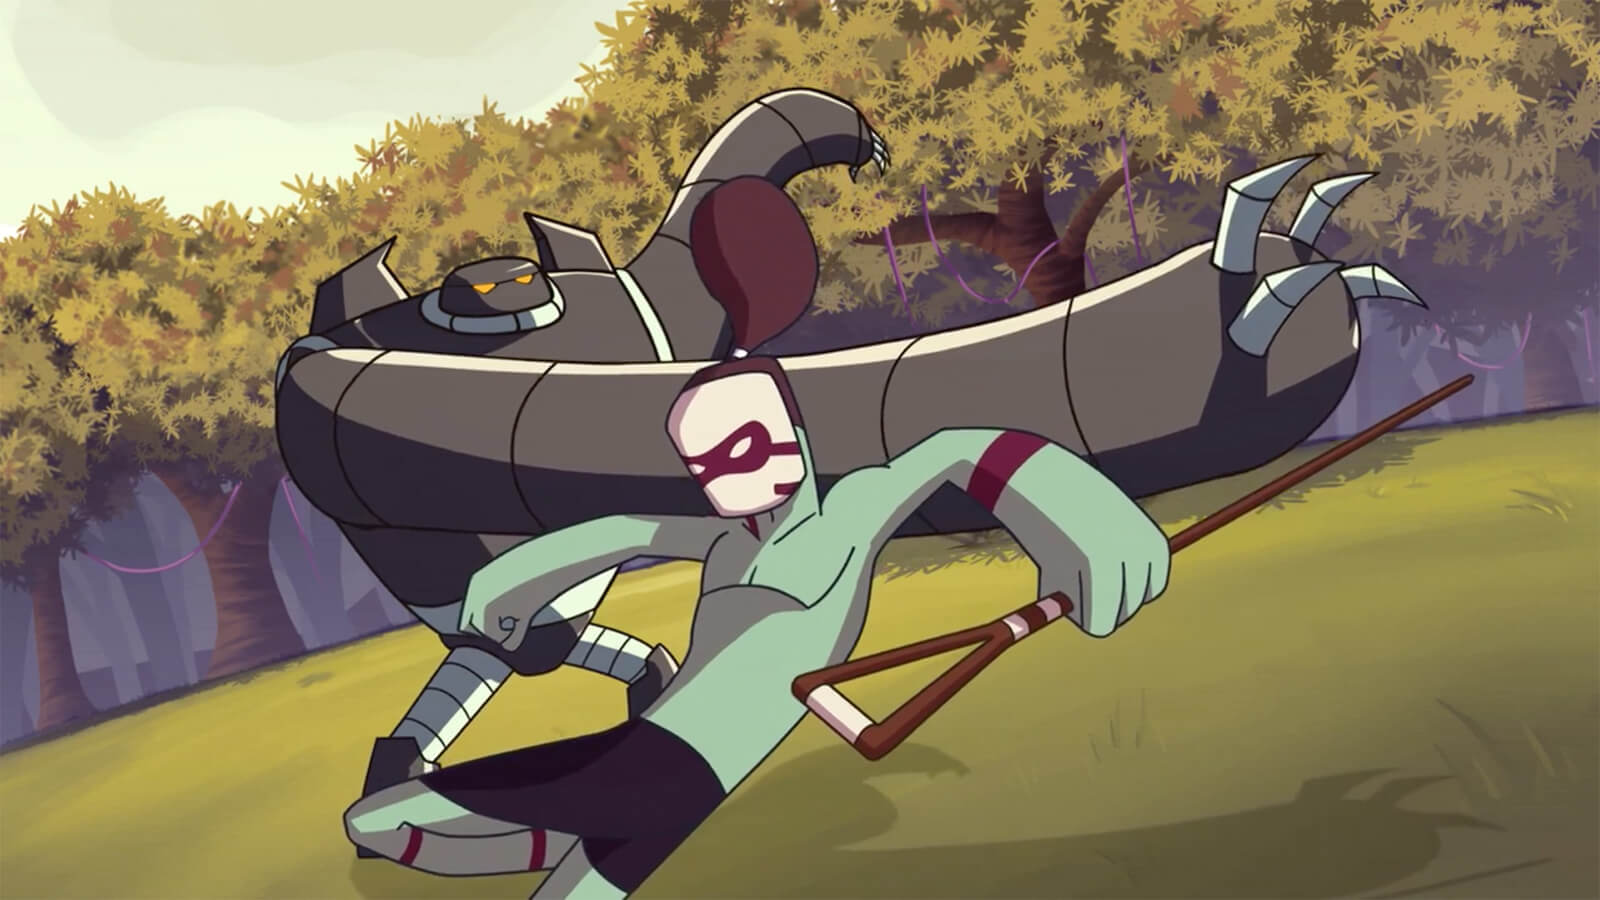 In a forest clearing, a green humanoid in a white-and-red mask dodges the swinging arm of a large, gray robot.